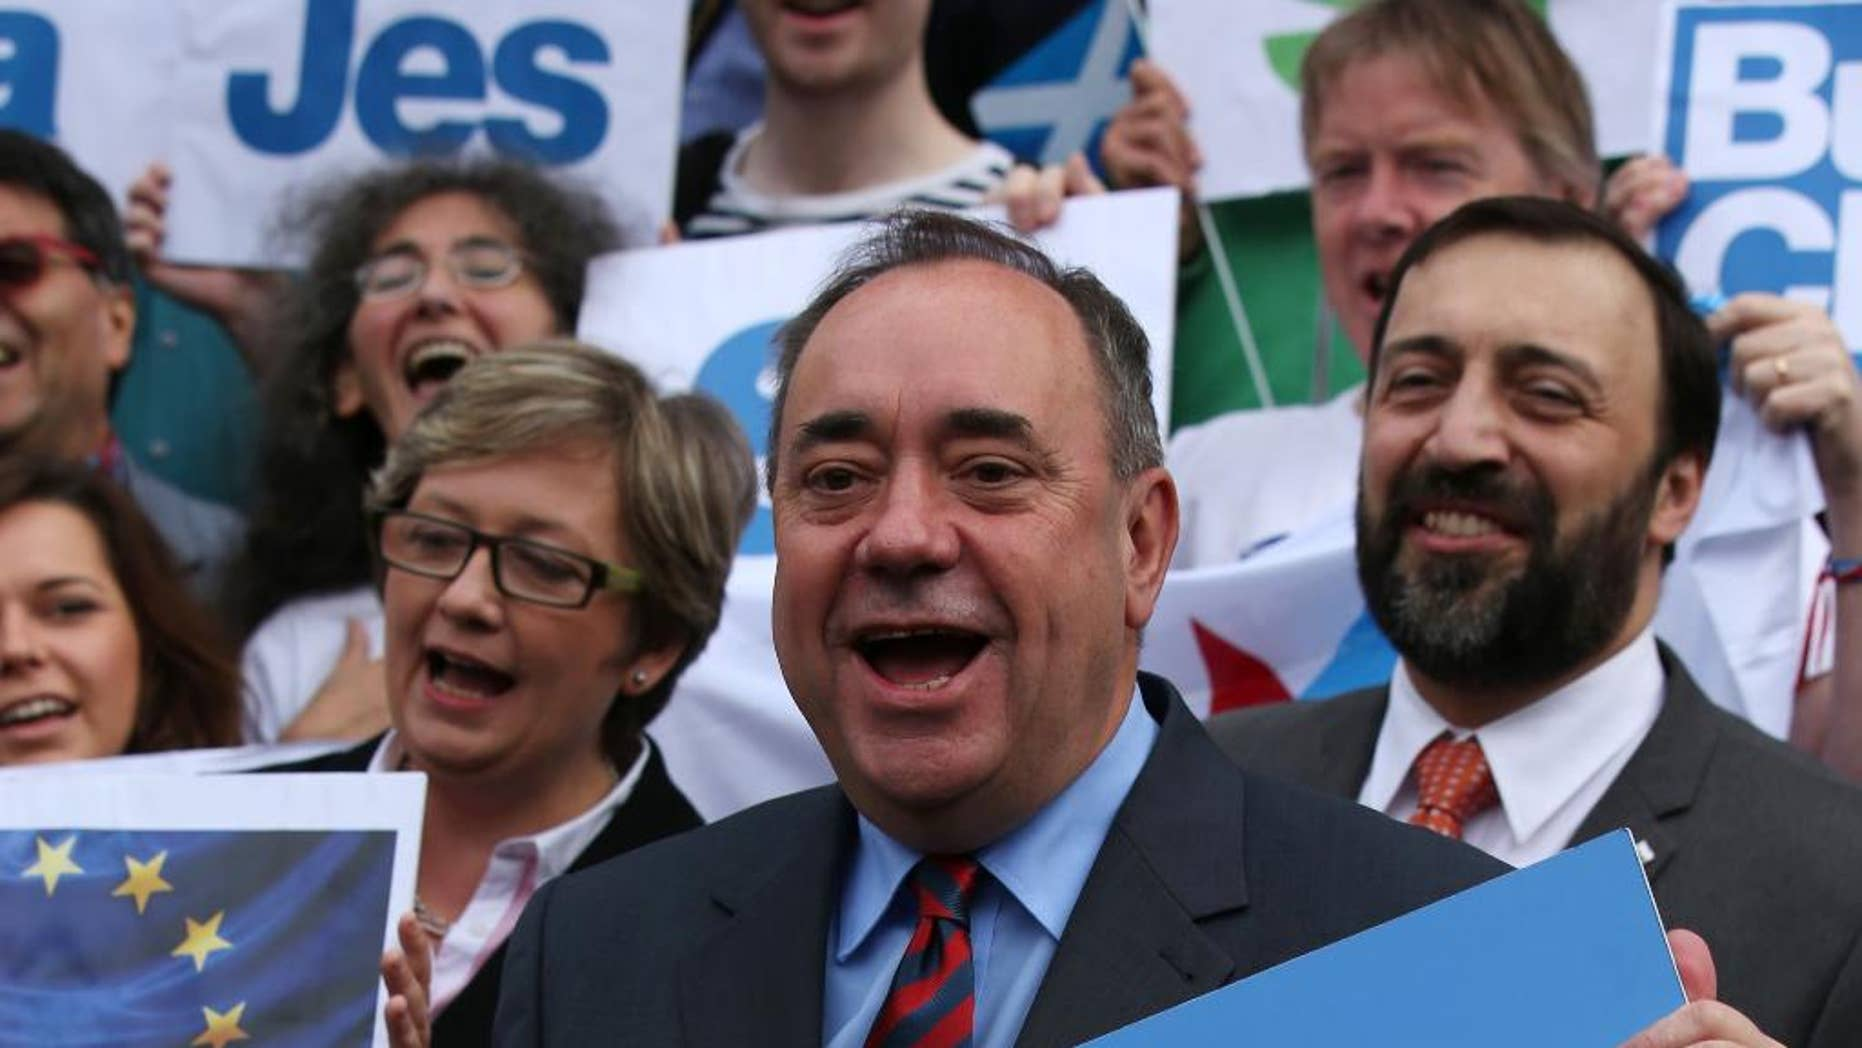 """Scottish First Minister Alex Salmond meets with Scots and other European citizens to celebrate European citizenship and """"Scotland's continued EU membership with a Yes vote"""" at  Parliament Square in Edinburgh, Scotland, Tuesday, Sept. 9, 2014. Opinion polls showing that the independence referendum in Scotland is too close to call have prompted widespread selling of the British pound. If the actual vote on Sept. 18 delivers a knockout blow to Scotland's 307-year union with England, that selling could become even more pronounced as the United Kingdom is likely plunged into the biggest constitutional crisis in its history. The fate of the British pound, which has been one of the most tangible links of the union, will be front and center of the separation proceedings as it has been for the past few months during the cut and thrust of the campaign. (AP Photo/Andrew Milligan, PA Wire)     UNITED KINGDOM OUT   -   NO SALES    -    NO ARCHIVES"""